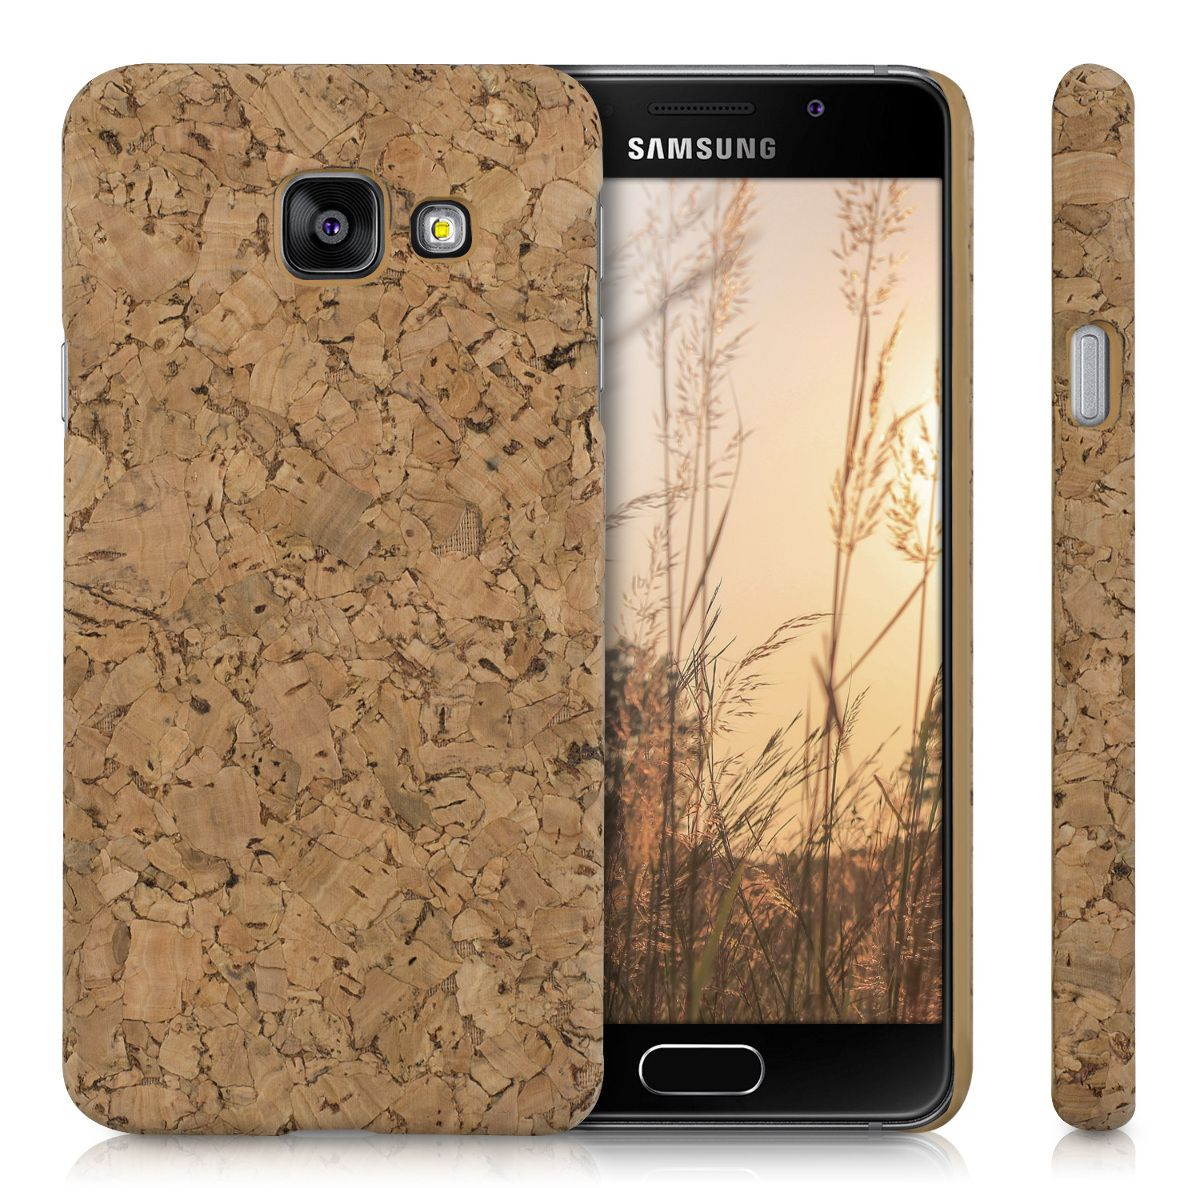 Cork Case For Samsung Galaxy A3 2016 Protective Phone Cover Samsung Galaxy A3 Samsung Galaxy Case